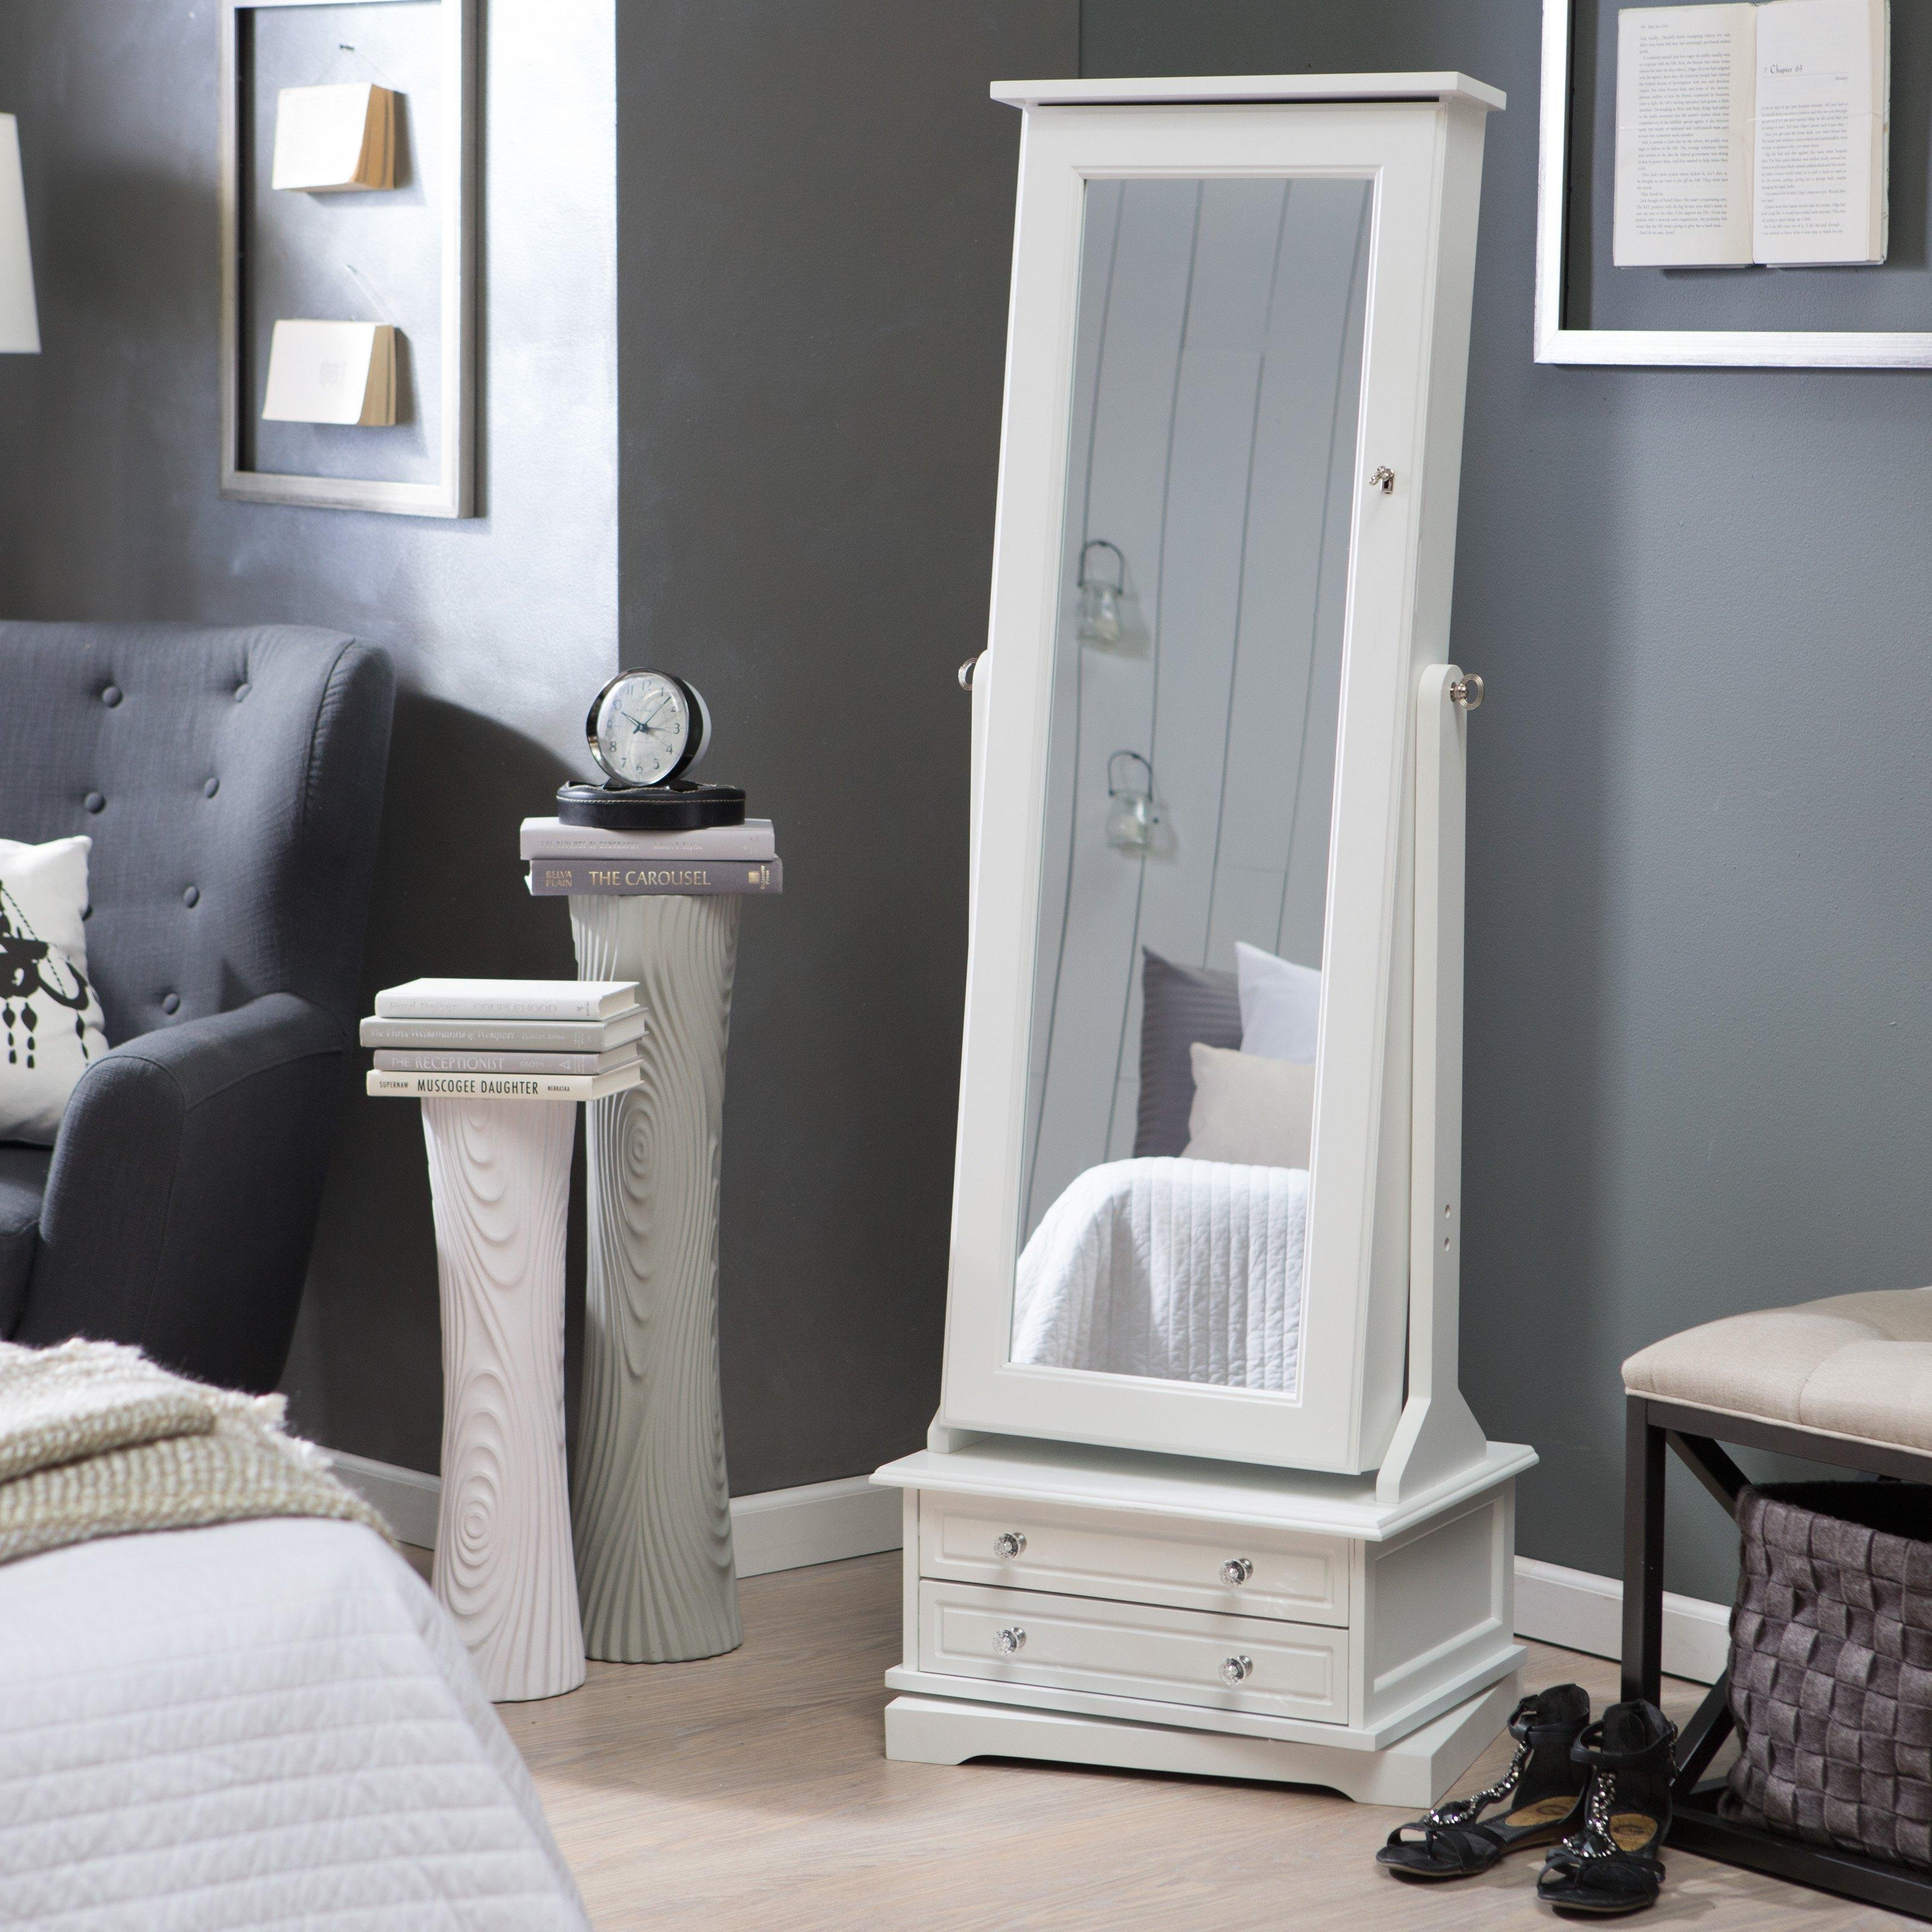 Bedroom Furniture Sets : Ceiling To Floor Large Decorative Mirrors Pertaining To Modern Free Standing Mirror (Image 4 of 20)